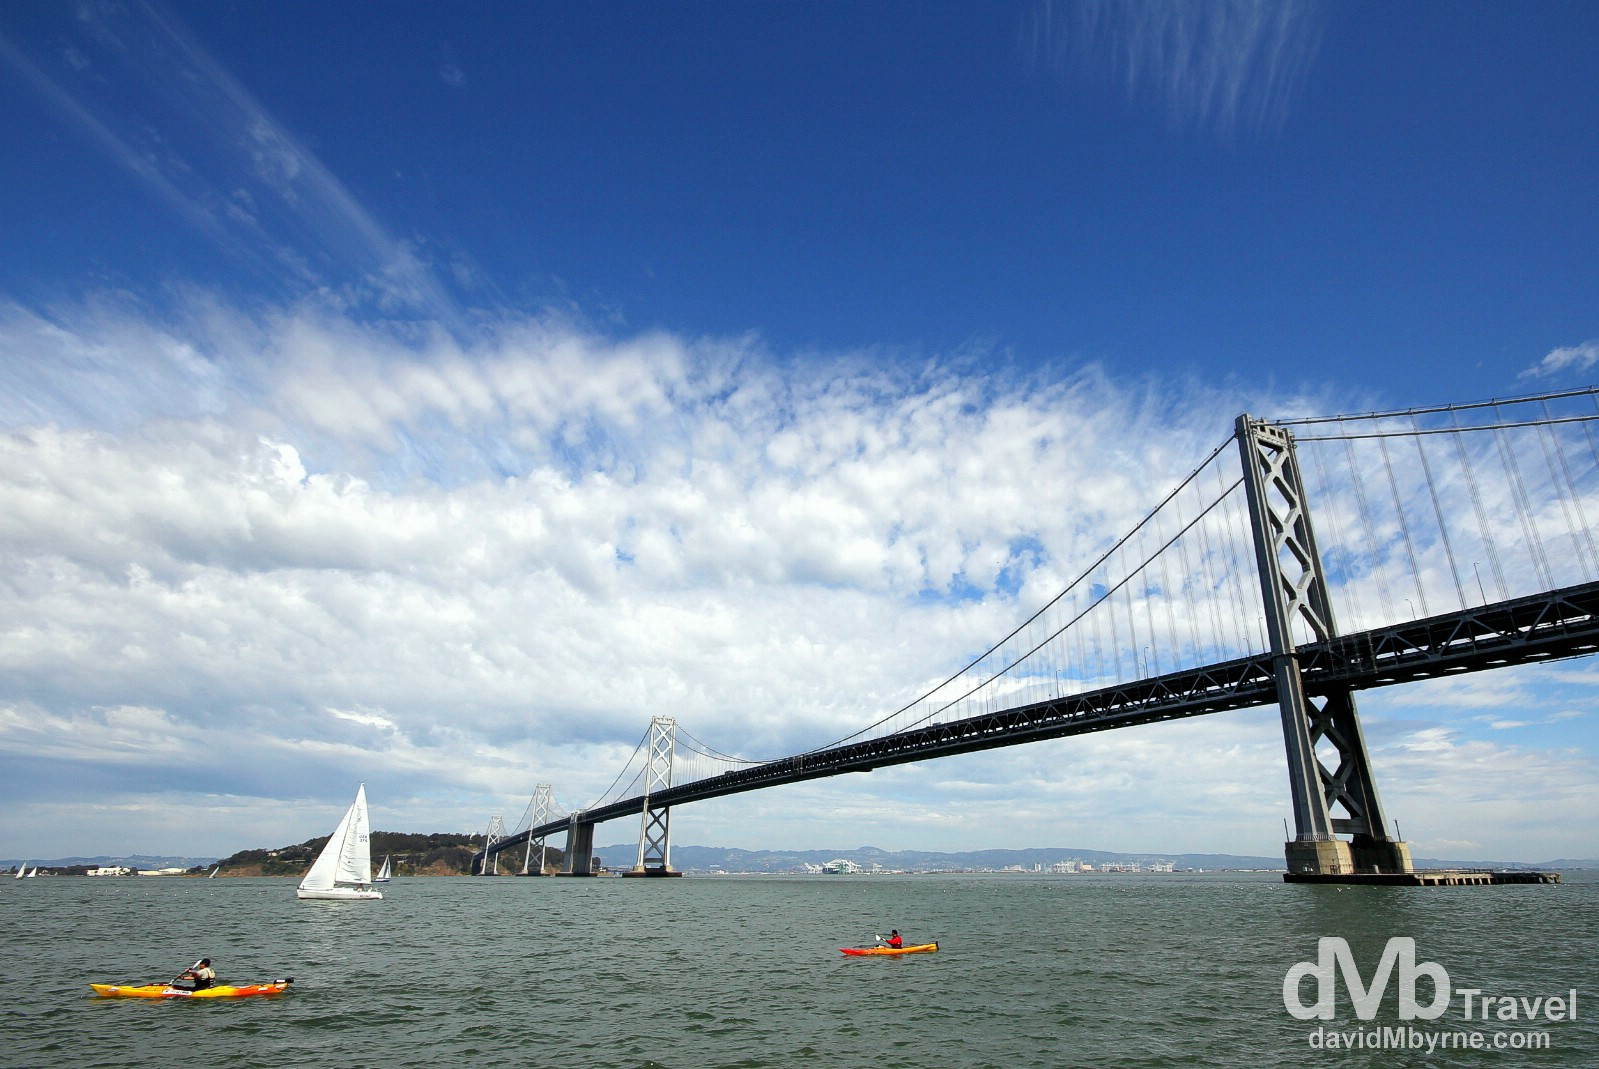 The Bay Bridge as seen from the waterfront Embarcadero, San Francisco, California, USA. March 30th 2013.